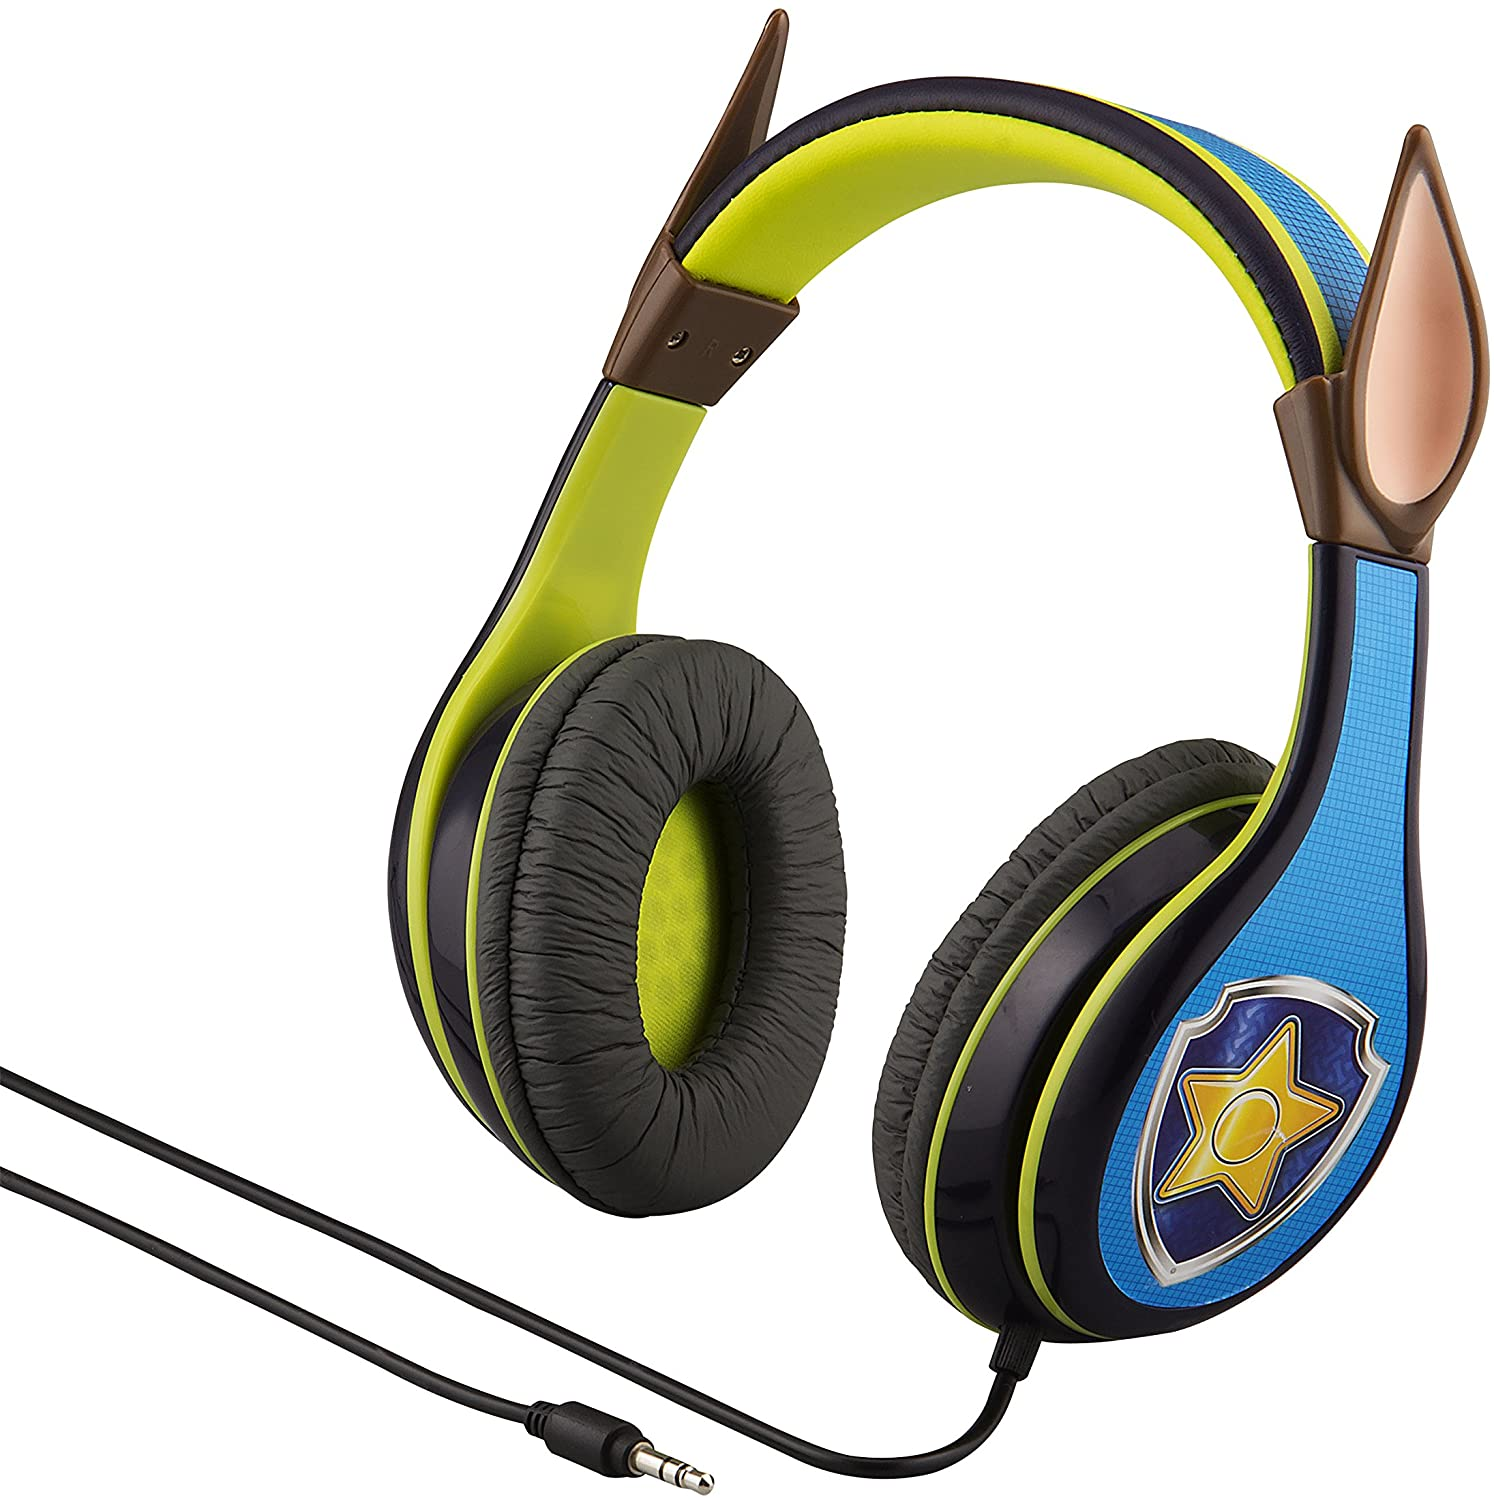 Stylo kids headphones for the toddler on the Air plane